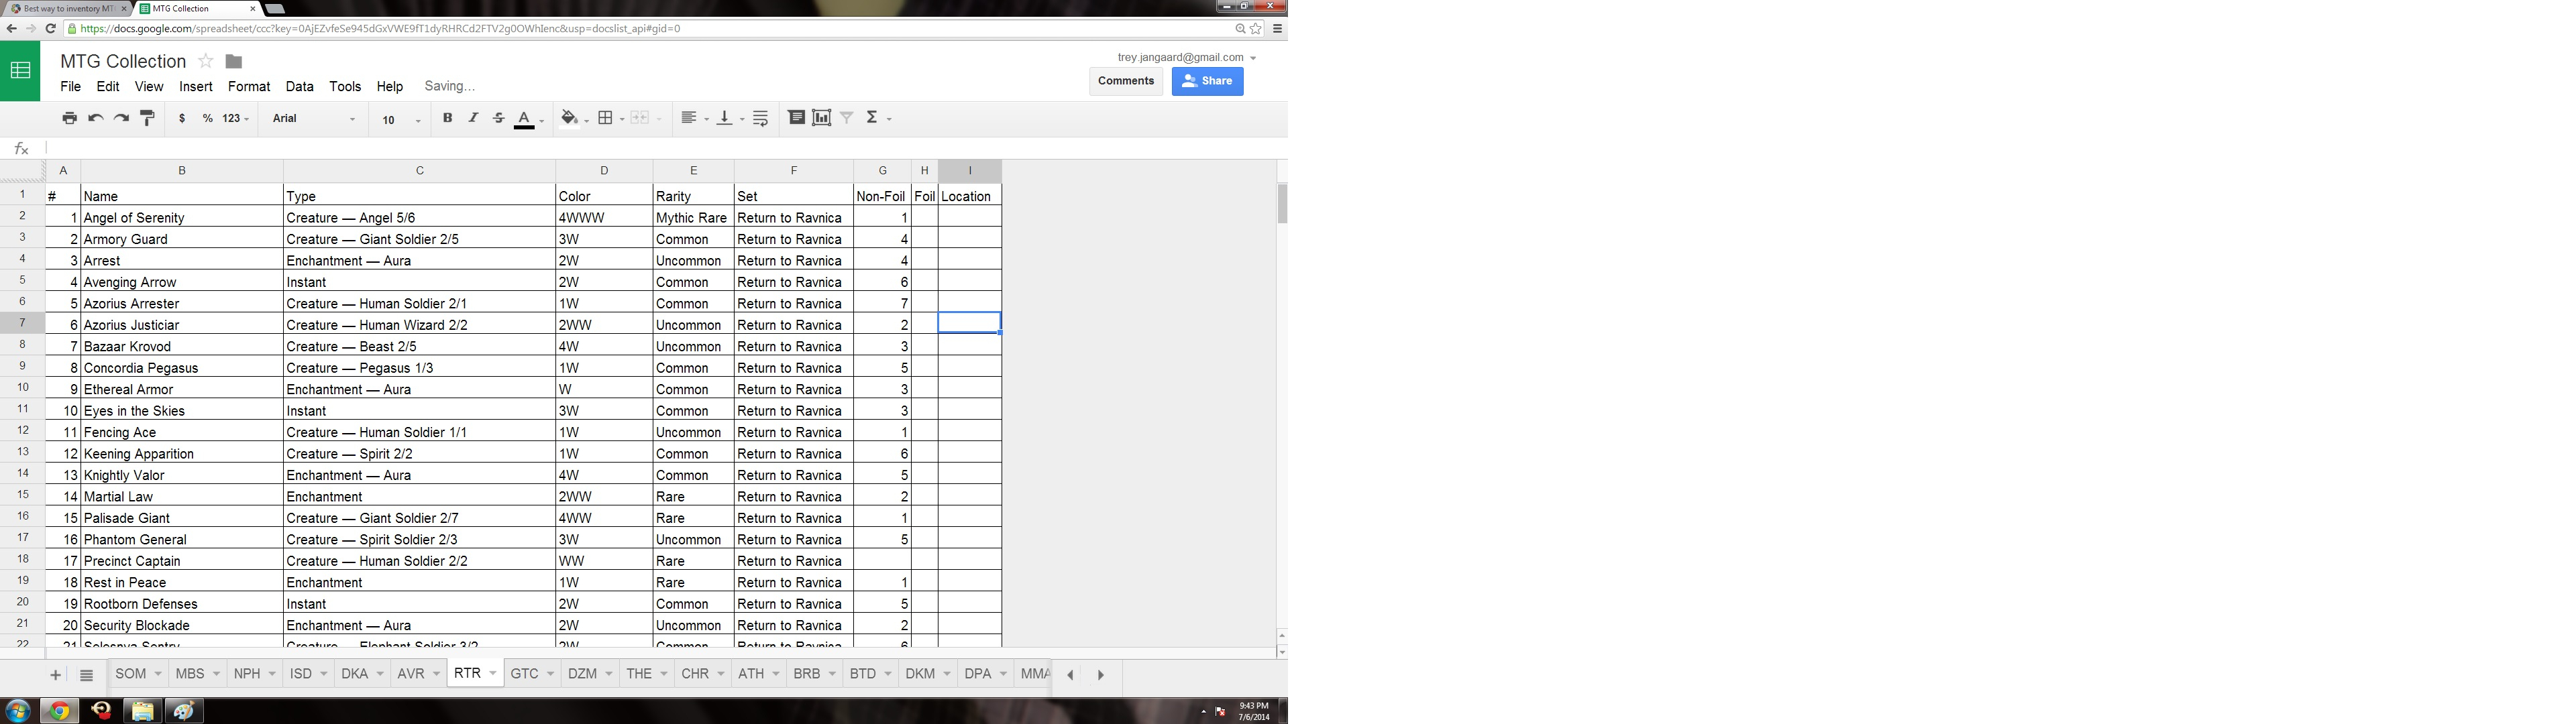 Magic The Gathering Spreadsheet Inside Best Way To Inventory Mtg Cards On A Computer And Sync Them With An